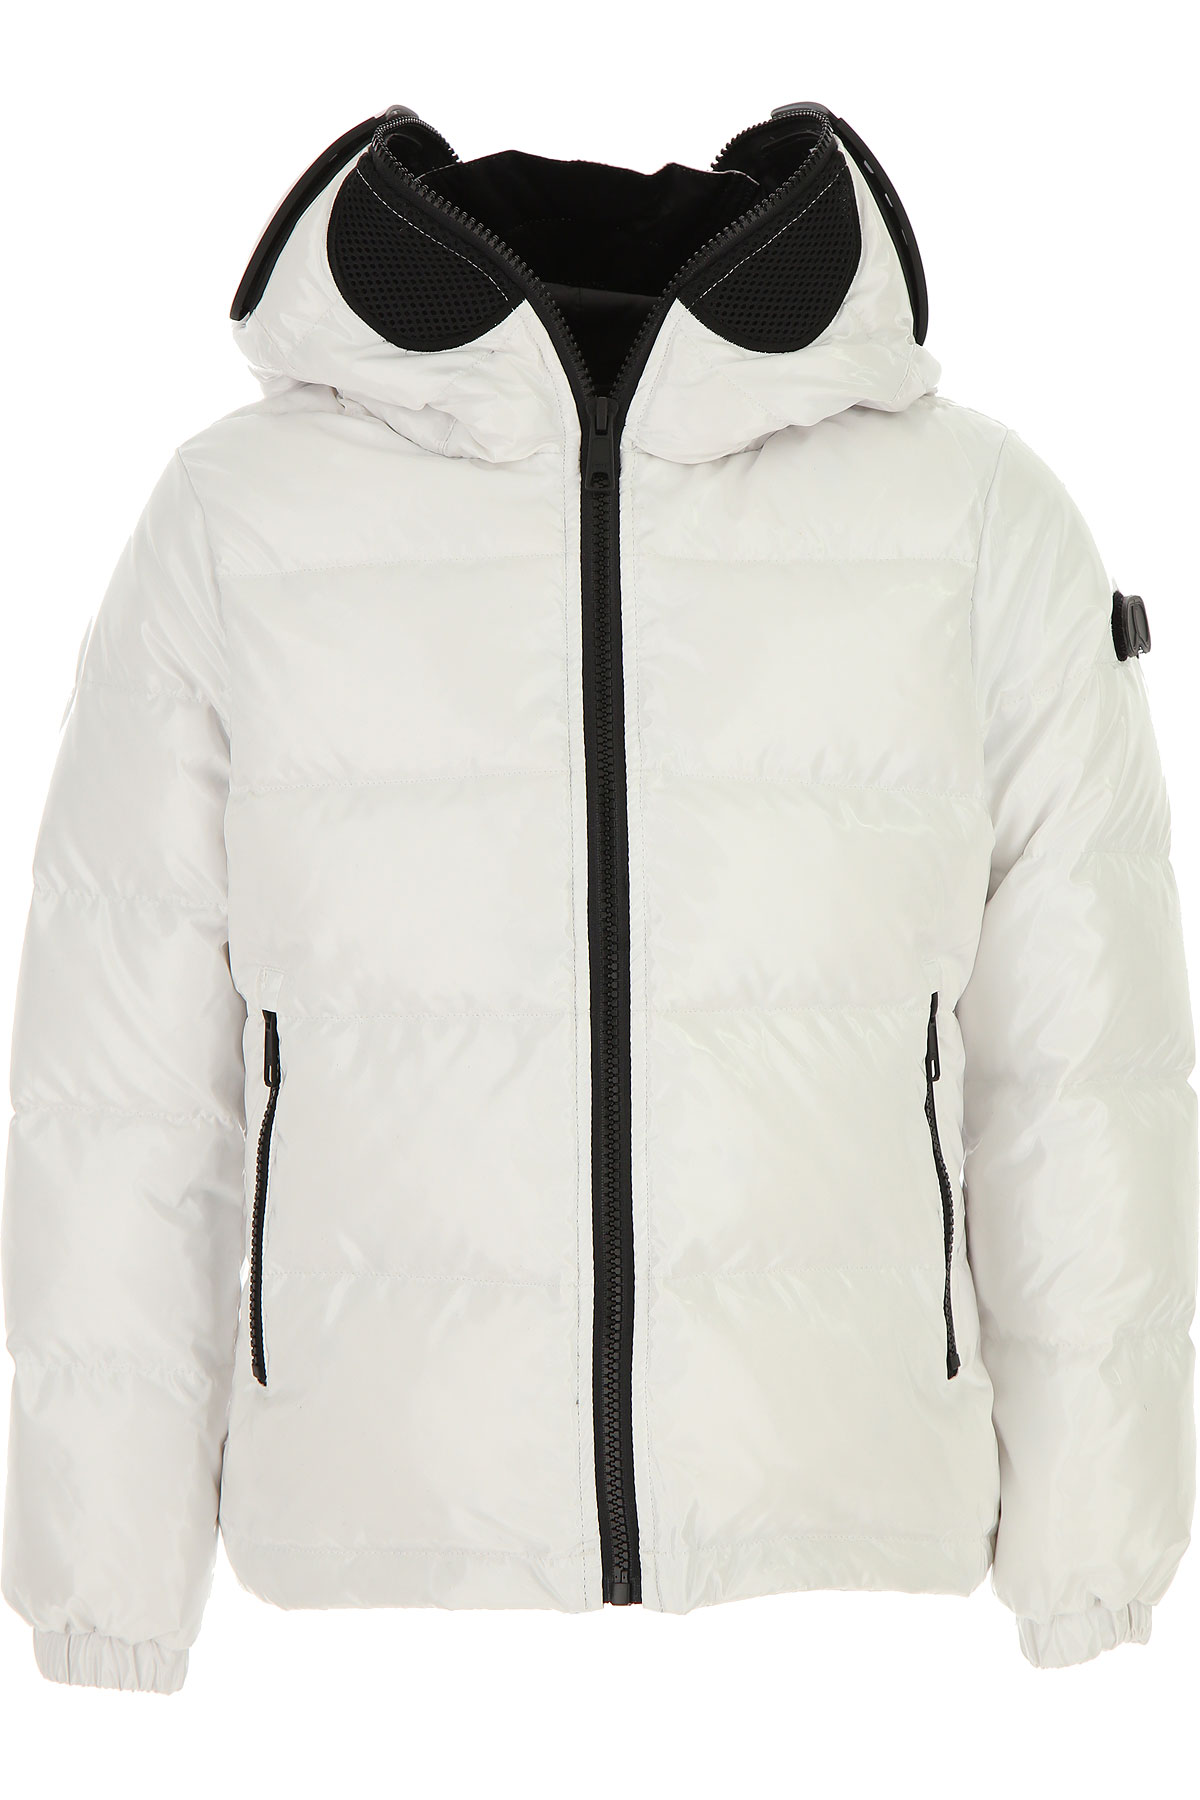 Image of Ai Riders On The Storm Girls Down Jacket for Kids, Puffer Ski Jacket, Off-White, polyester, 2017, 10Y 14Y